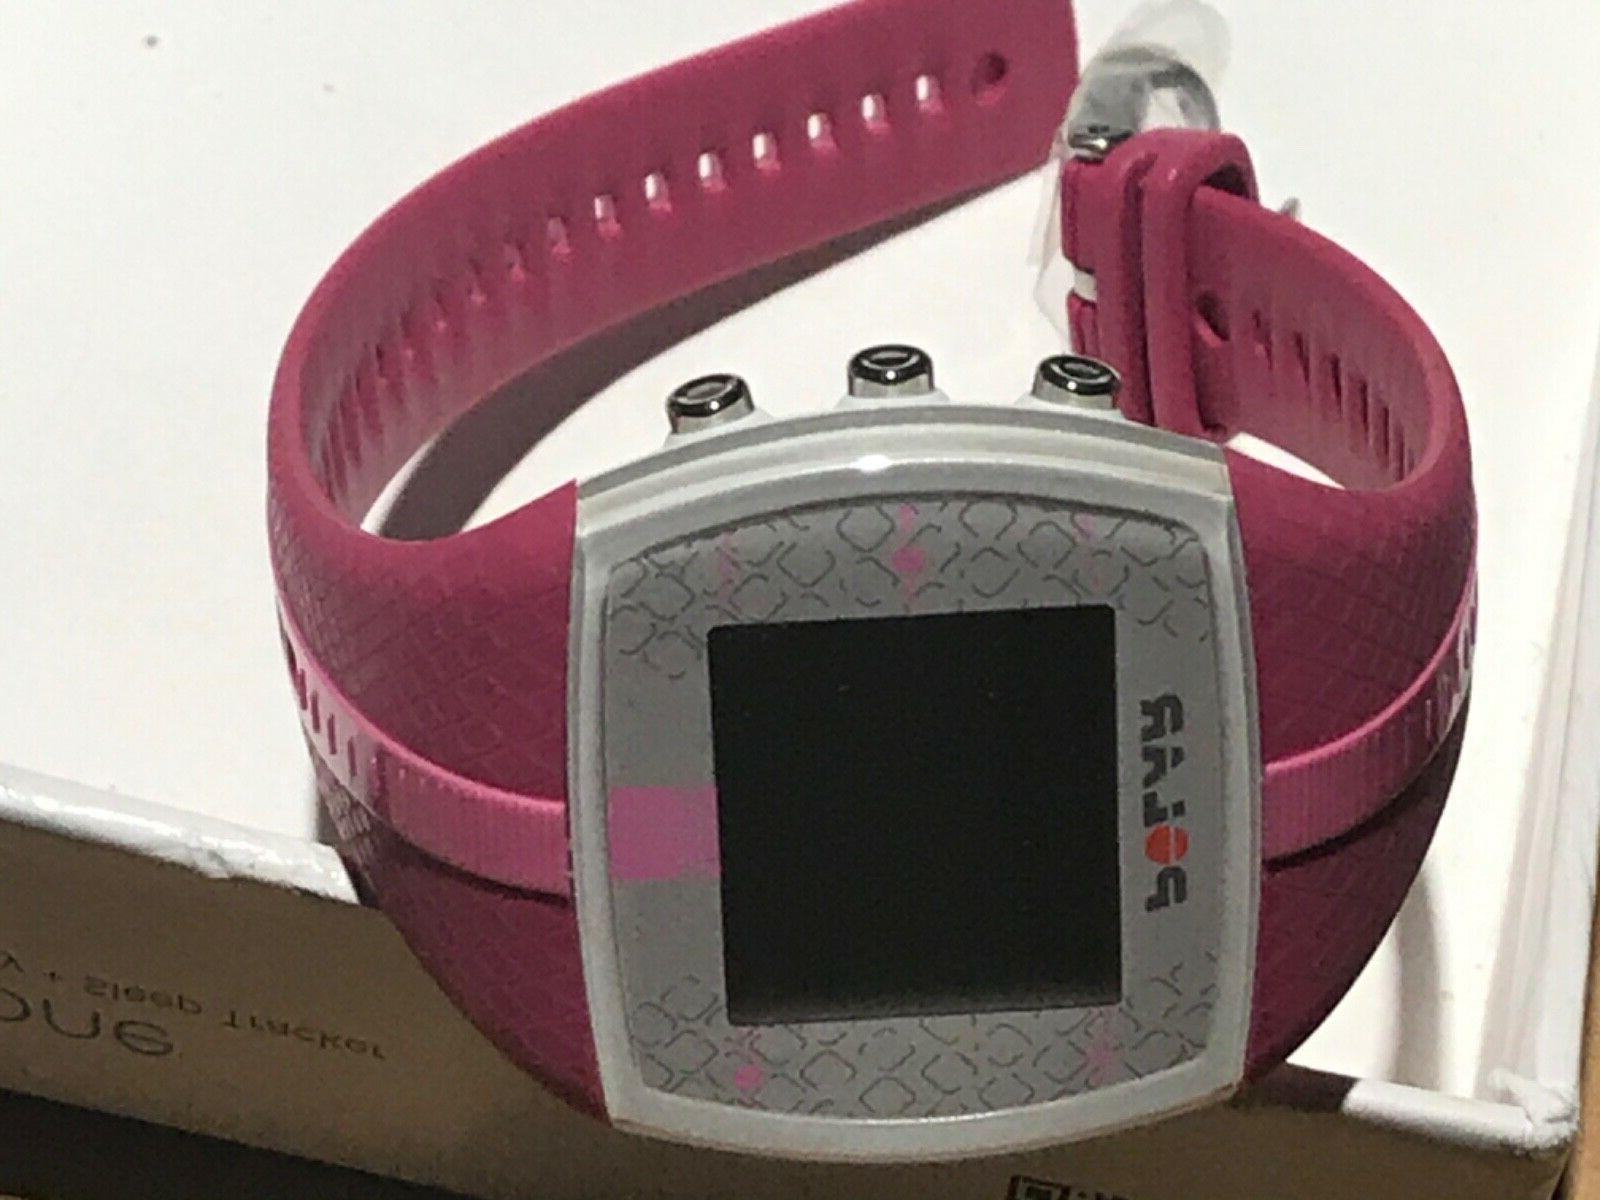 ft4 pink heart rate monitor